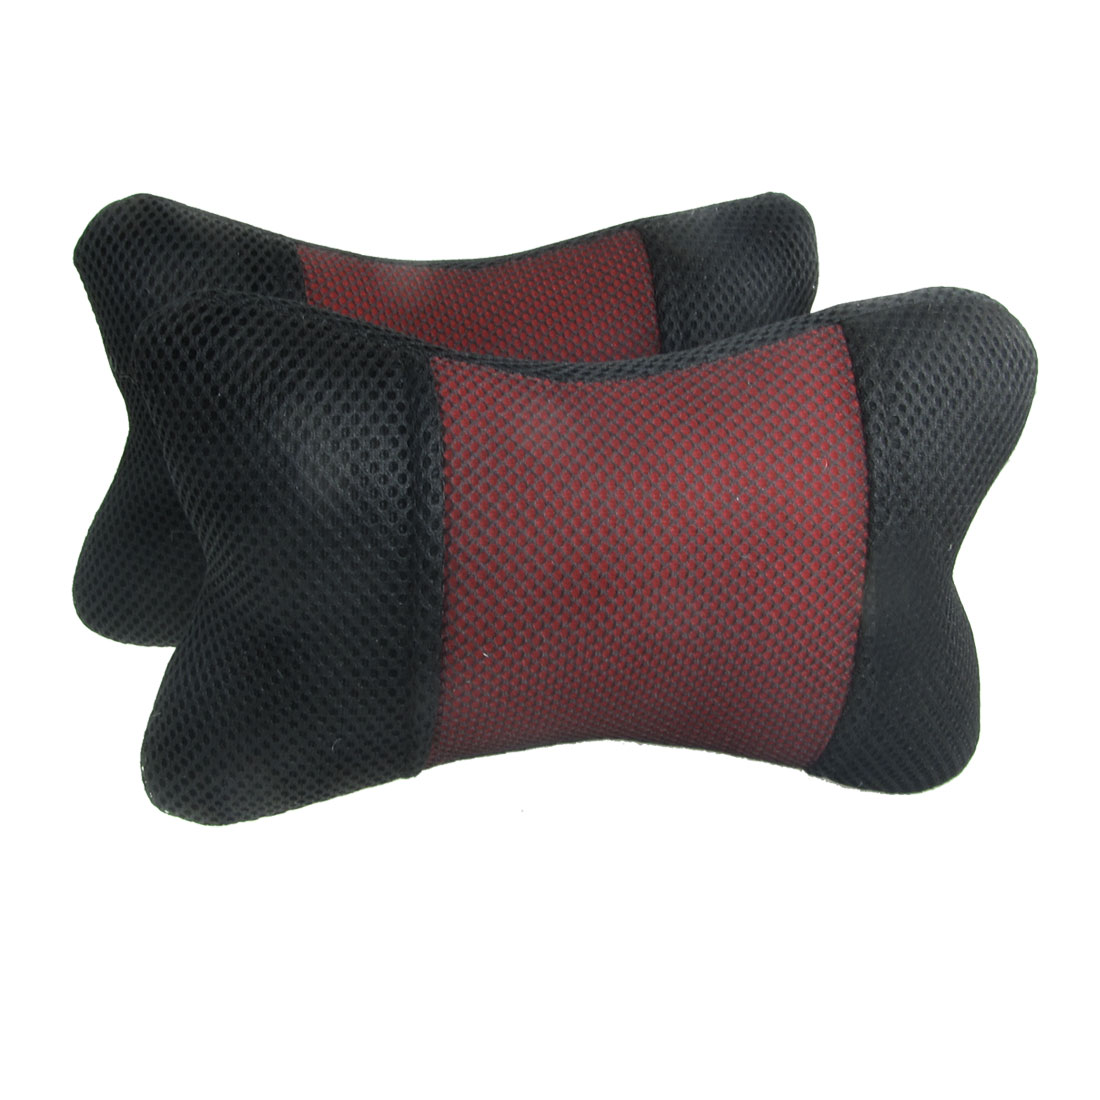 Black Red Nylon Mesh Covered Vechile Car Pillow Cushion Pad 2 Pcs